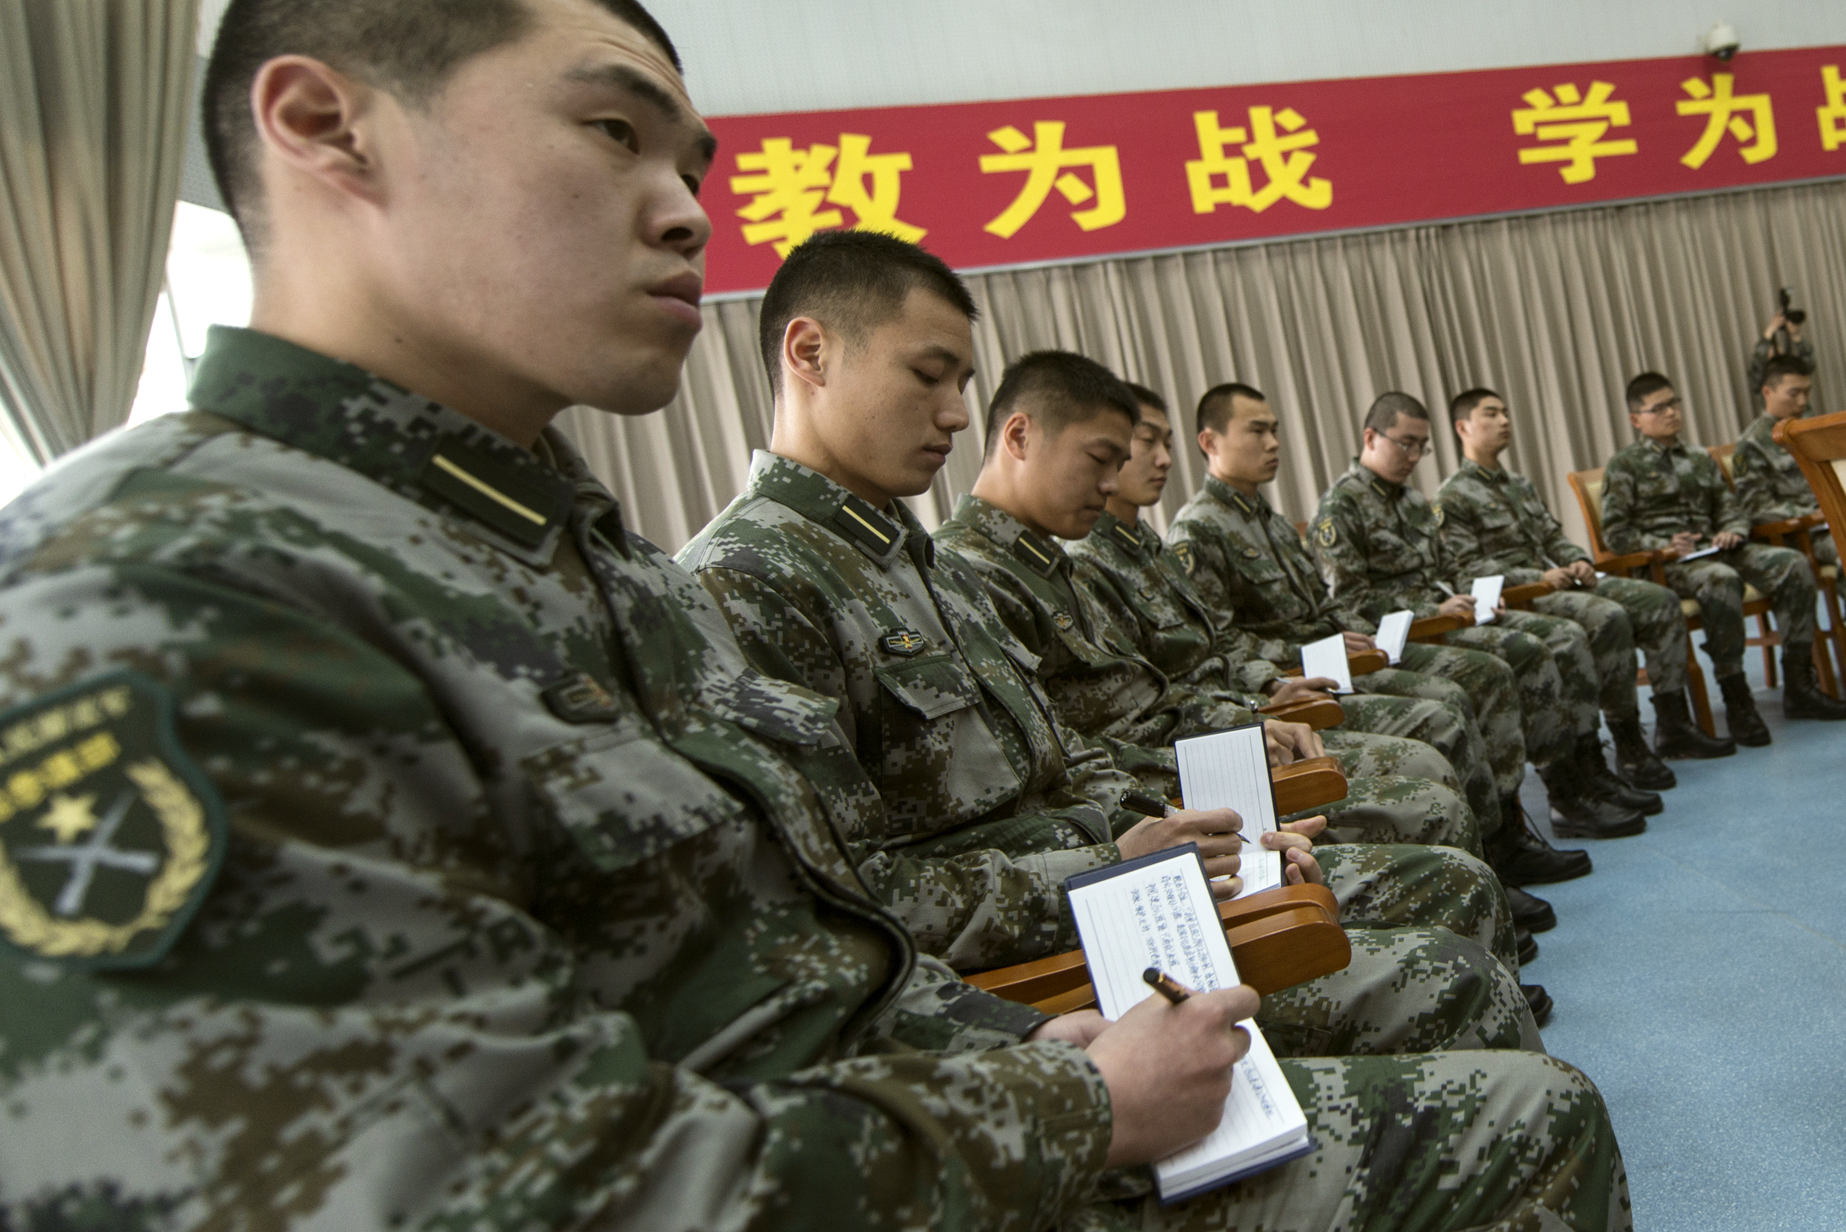 People's Liberation Army Ground Force